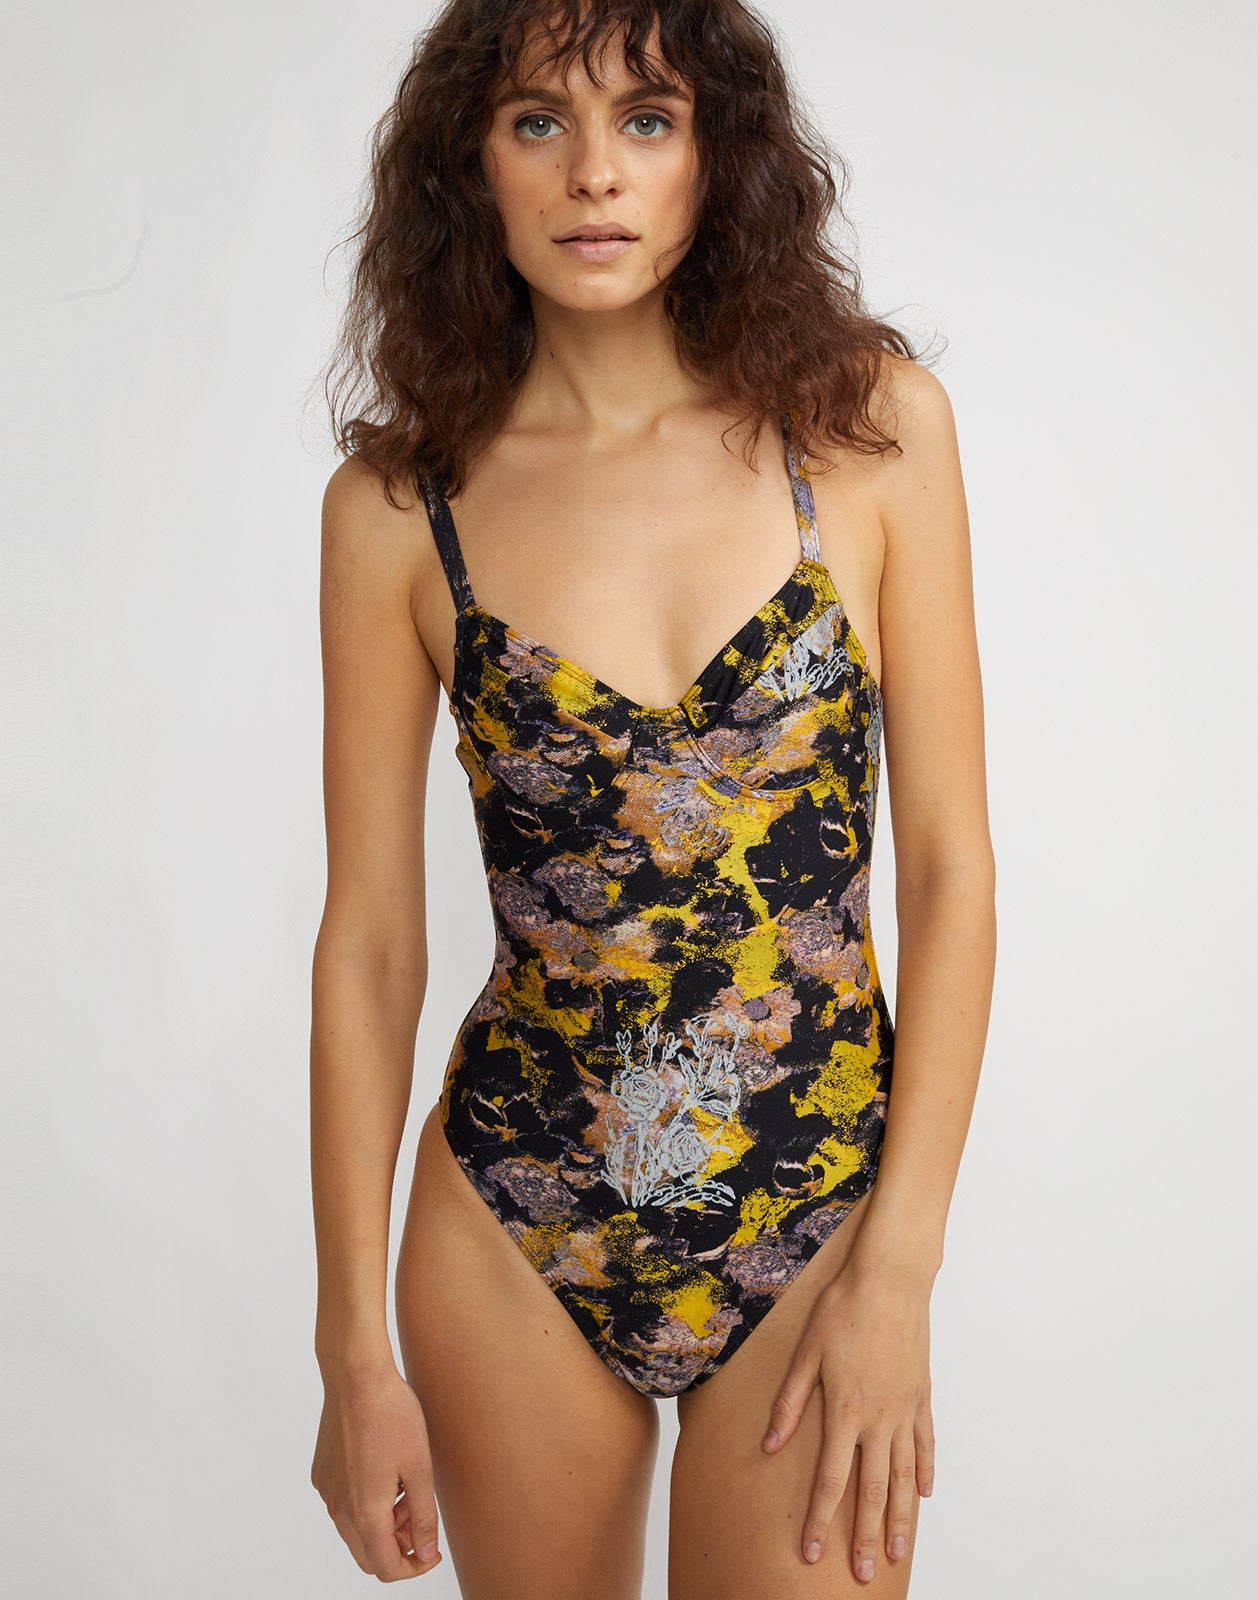 Front view of metallic floral one piece swimsuit with underwire bralette and adjustable straps.